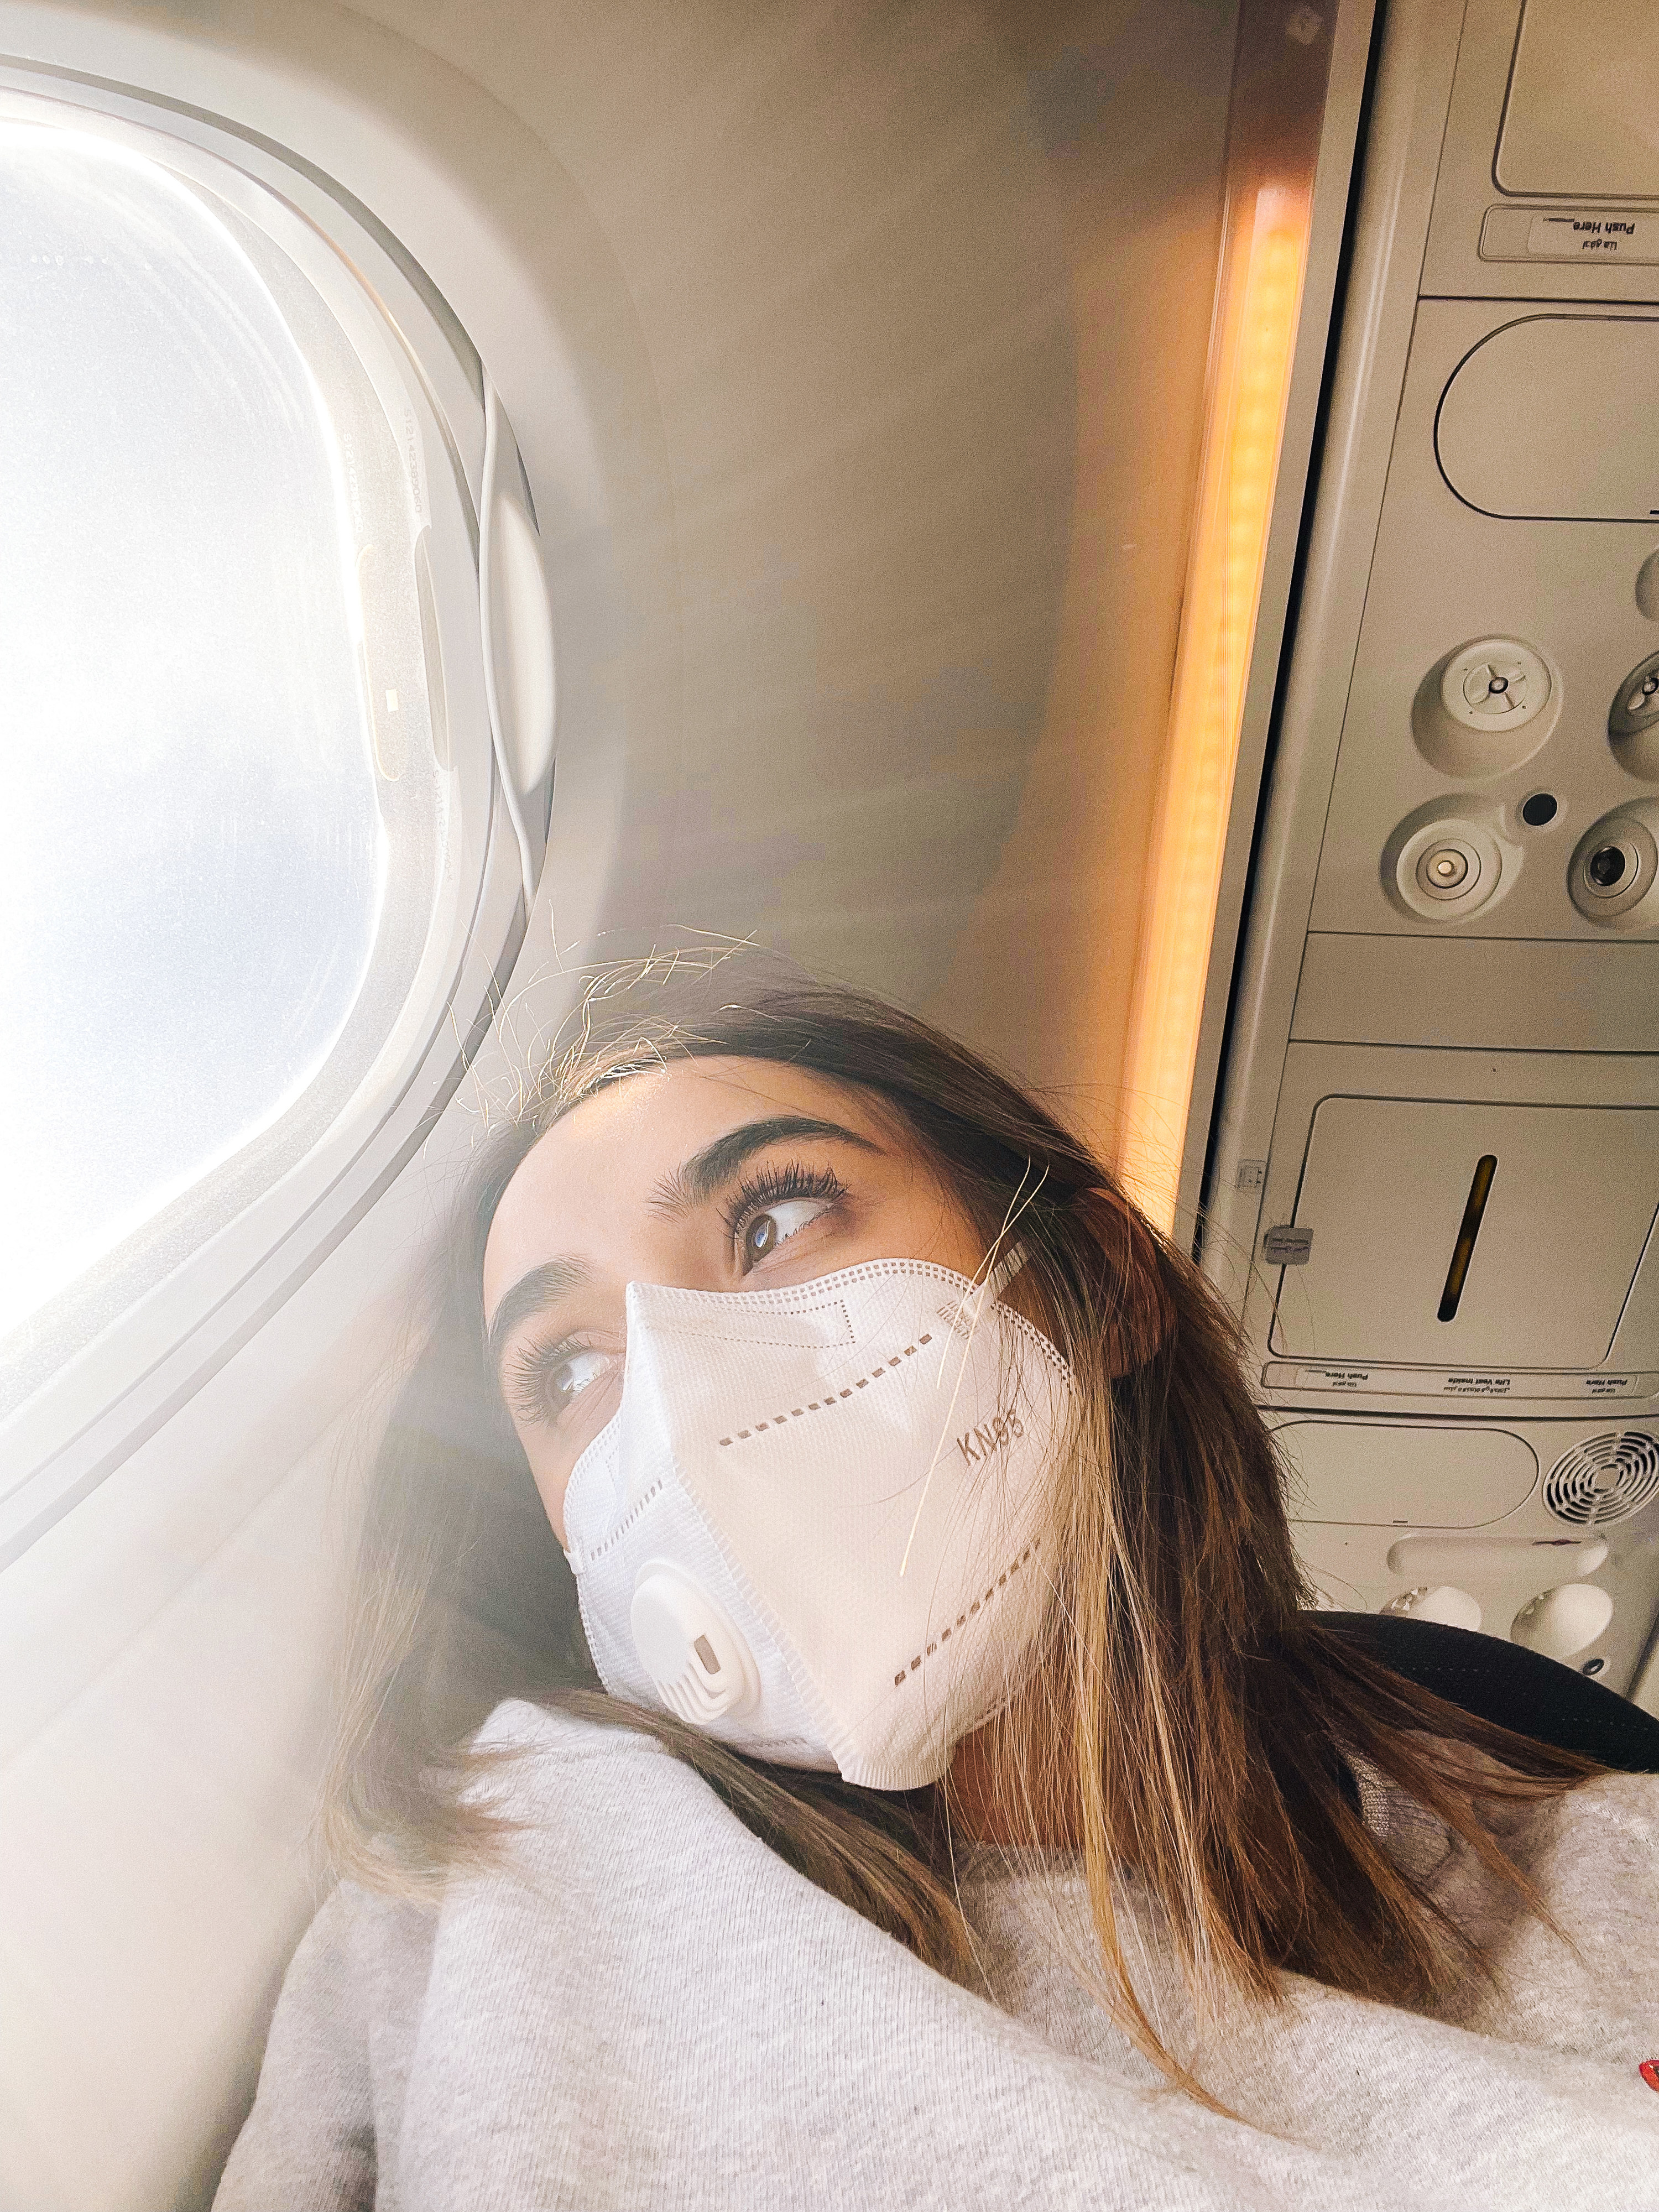 A woman looking out a plane window with mask on